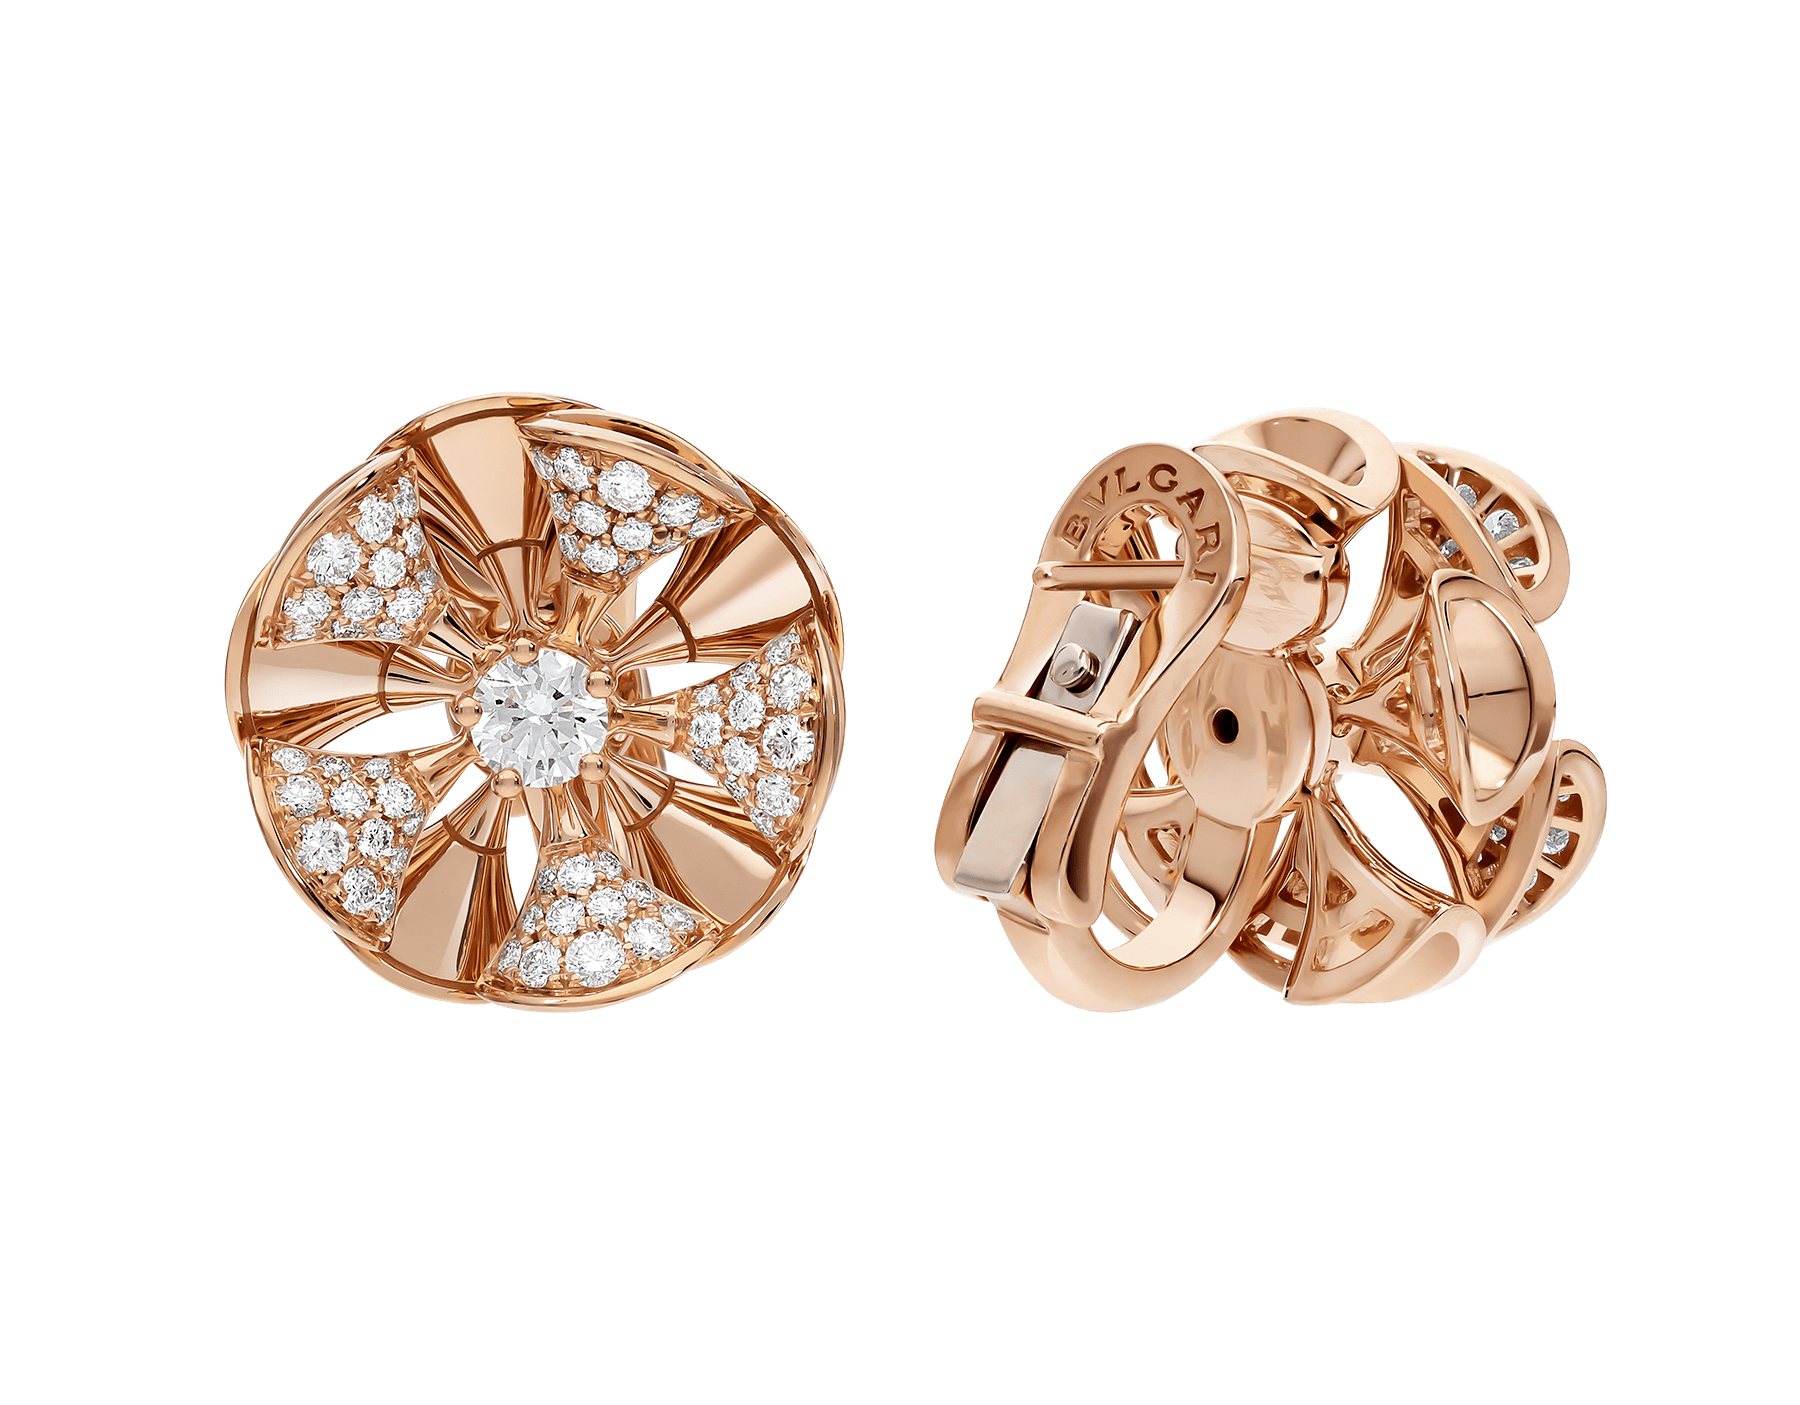 DIVAS' DREAM earrings in 18 kt rose gold set with a central diamond and pavé diamonds. 350784 image 3